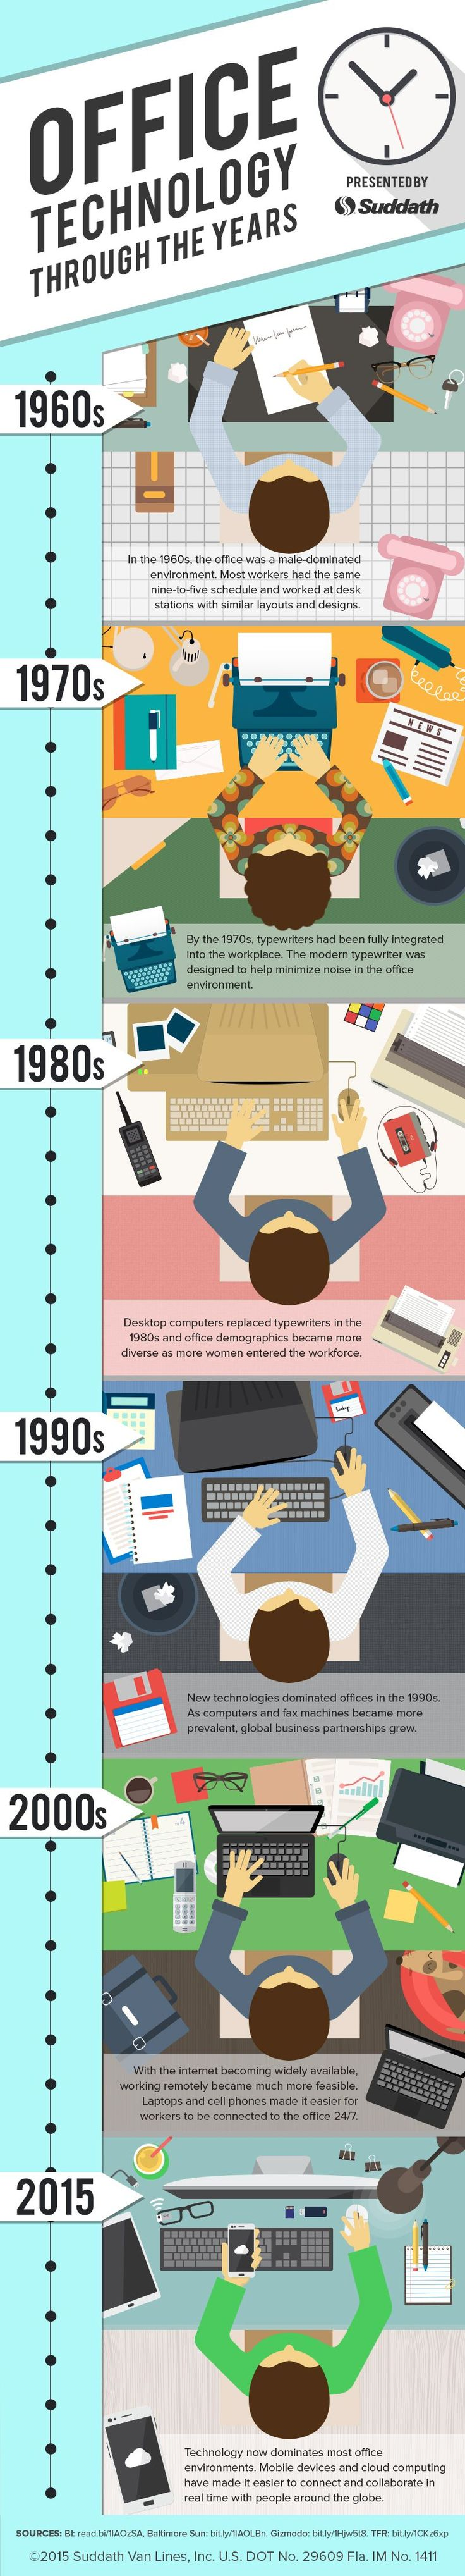 Office technology through the years. (More design inspiration at www.aldenchong.com) #infographic